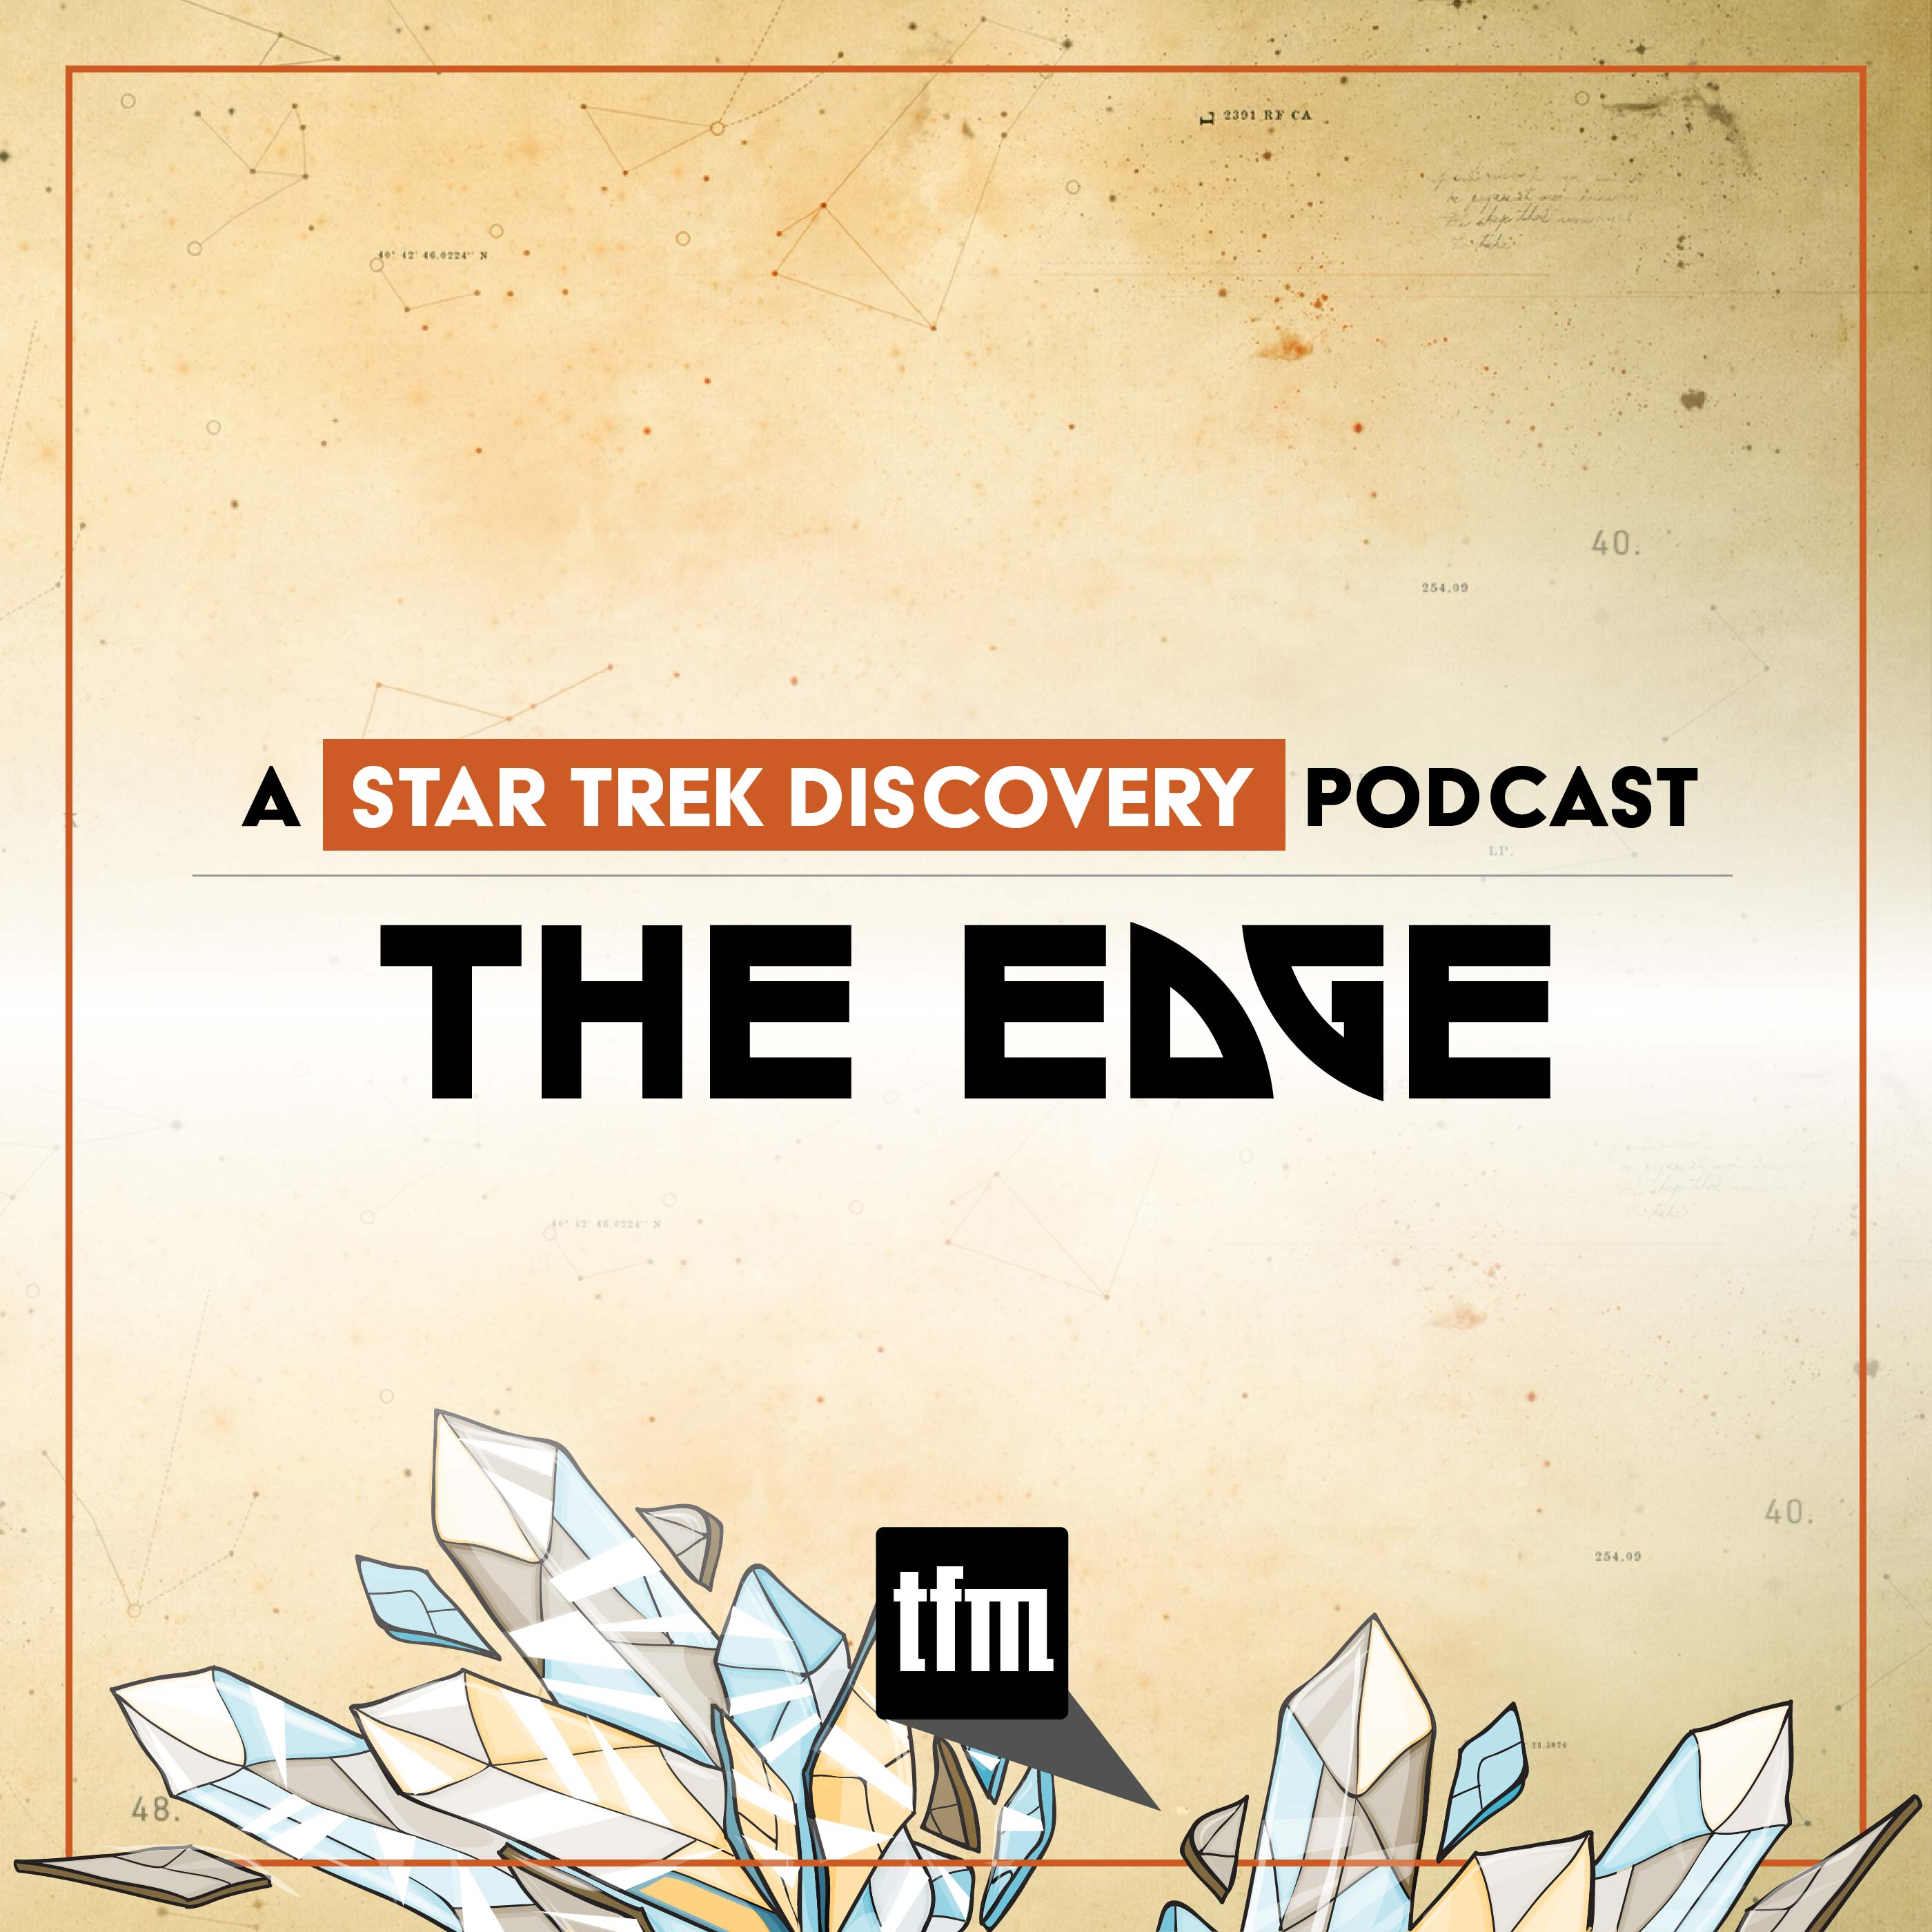 The Edge: A Star Trek Discovery Podcast show art